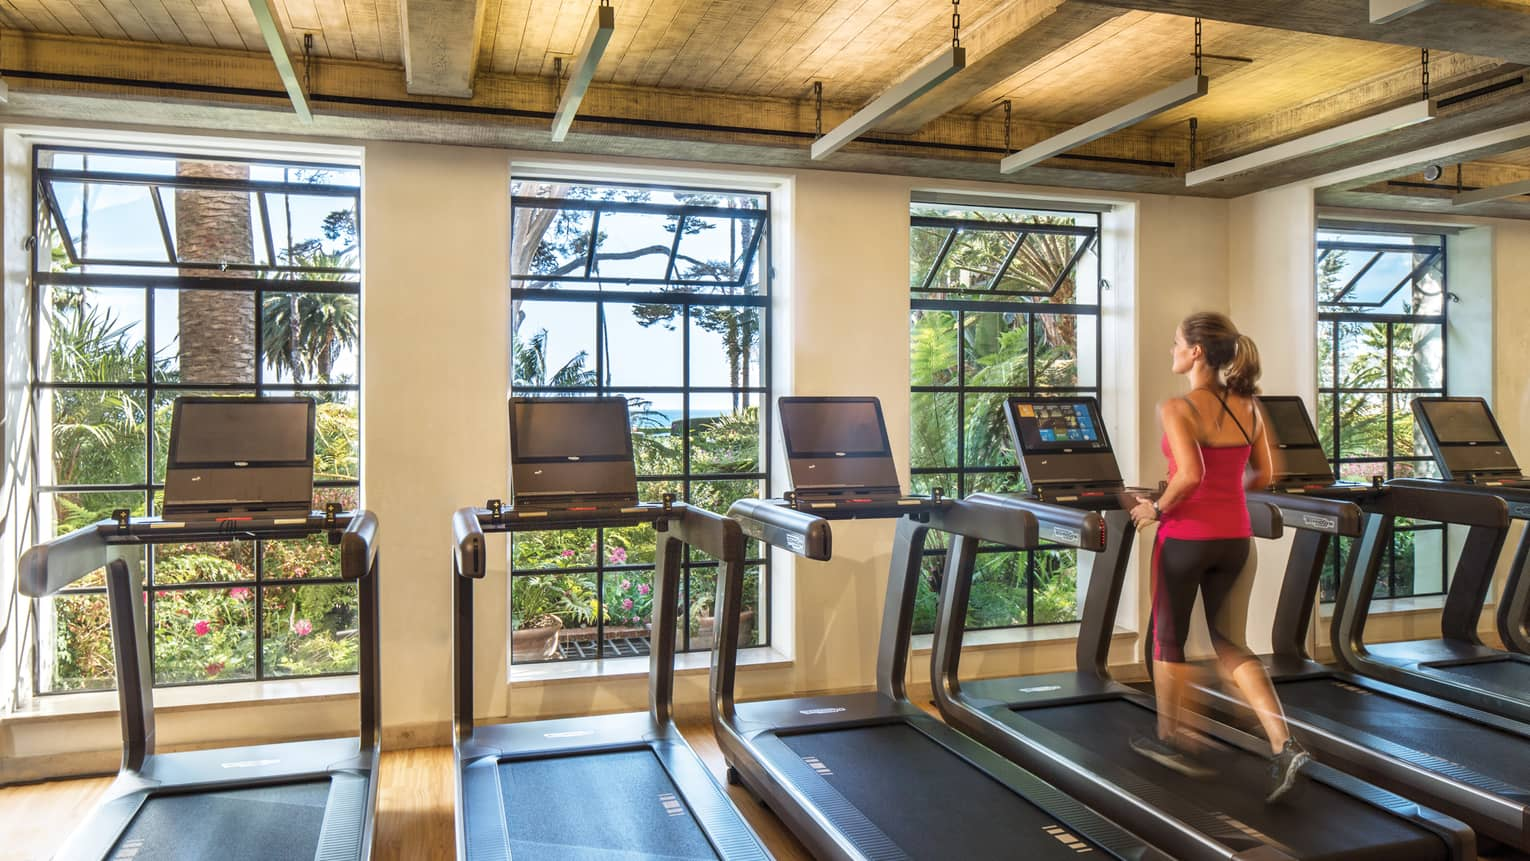 Woman runs on row treadmill in row of machines by large open windows in Fitness Centre